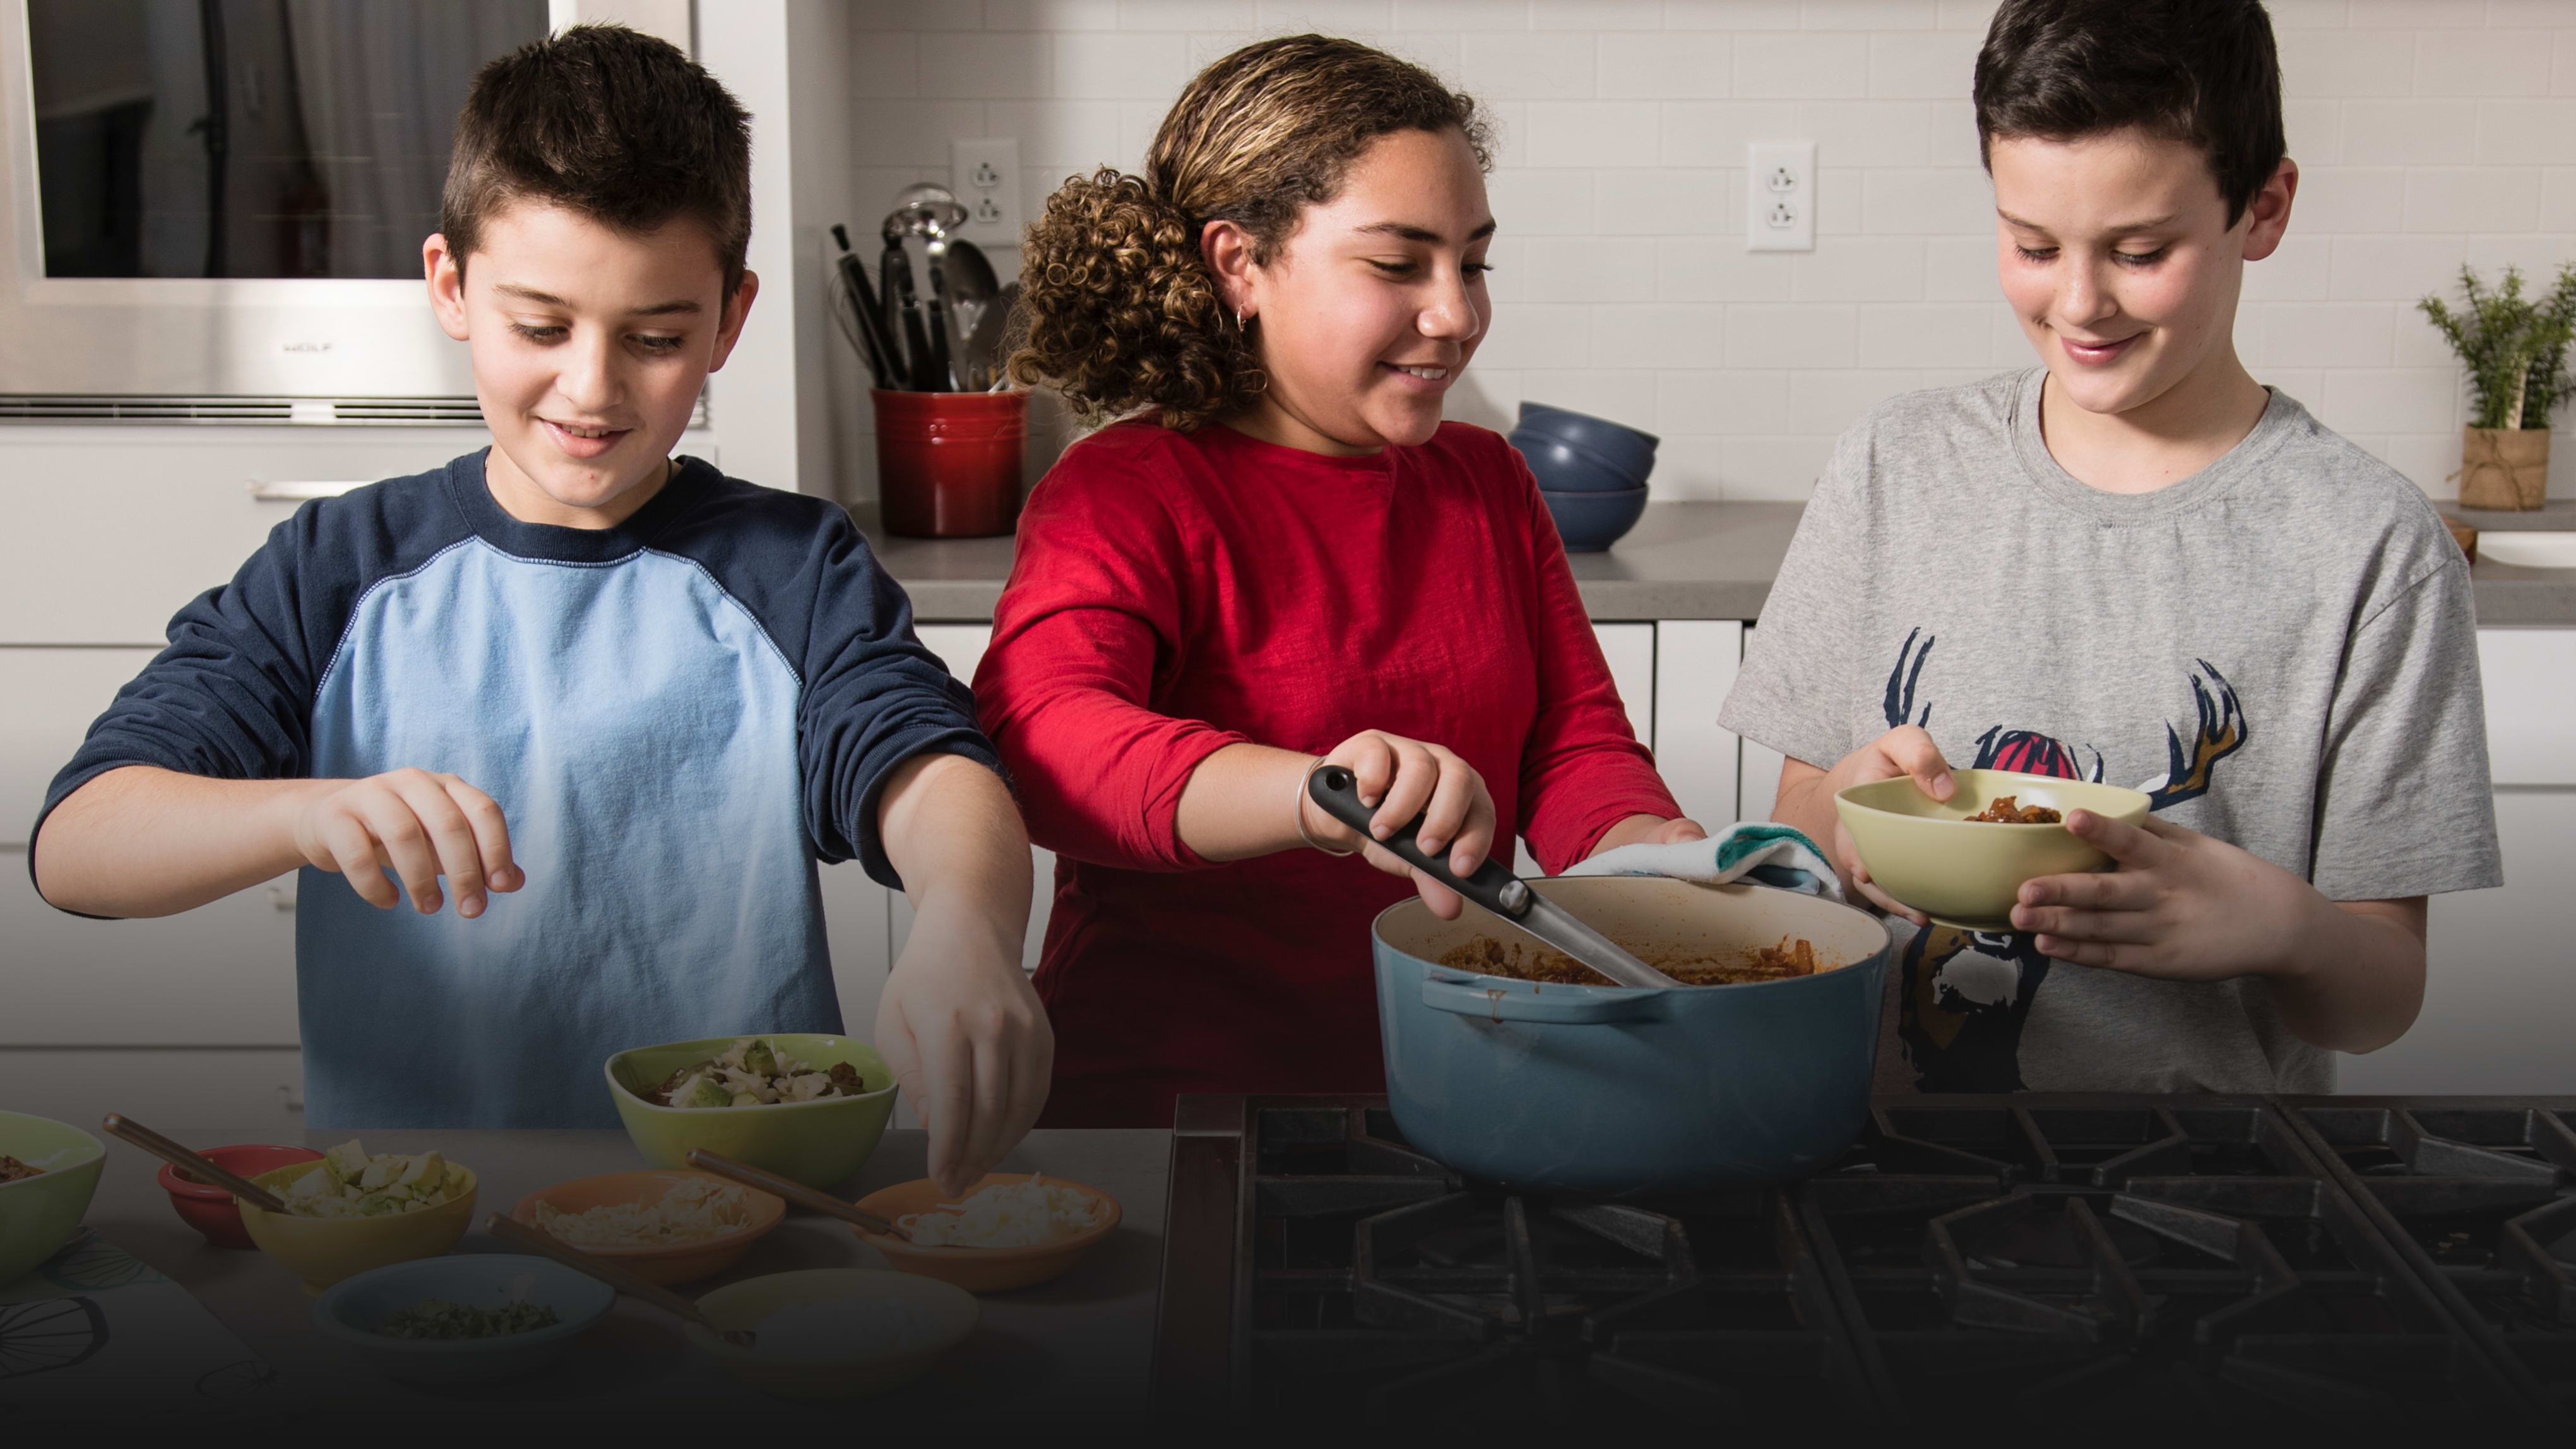 Slumber Party Fare That Kids Can Prepare Themselves